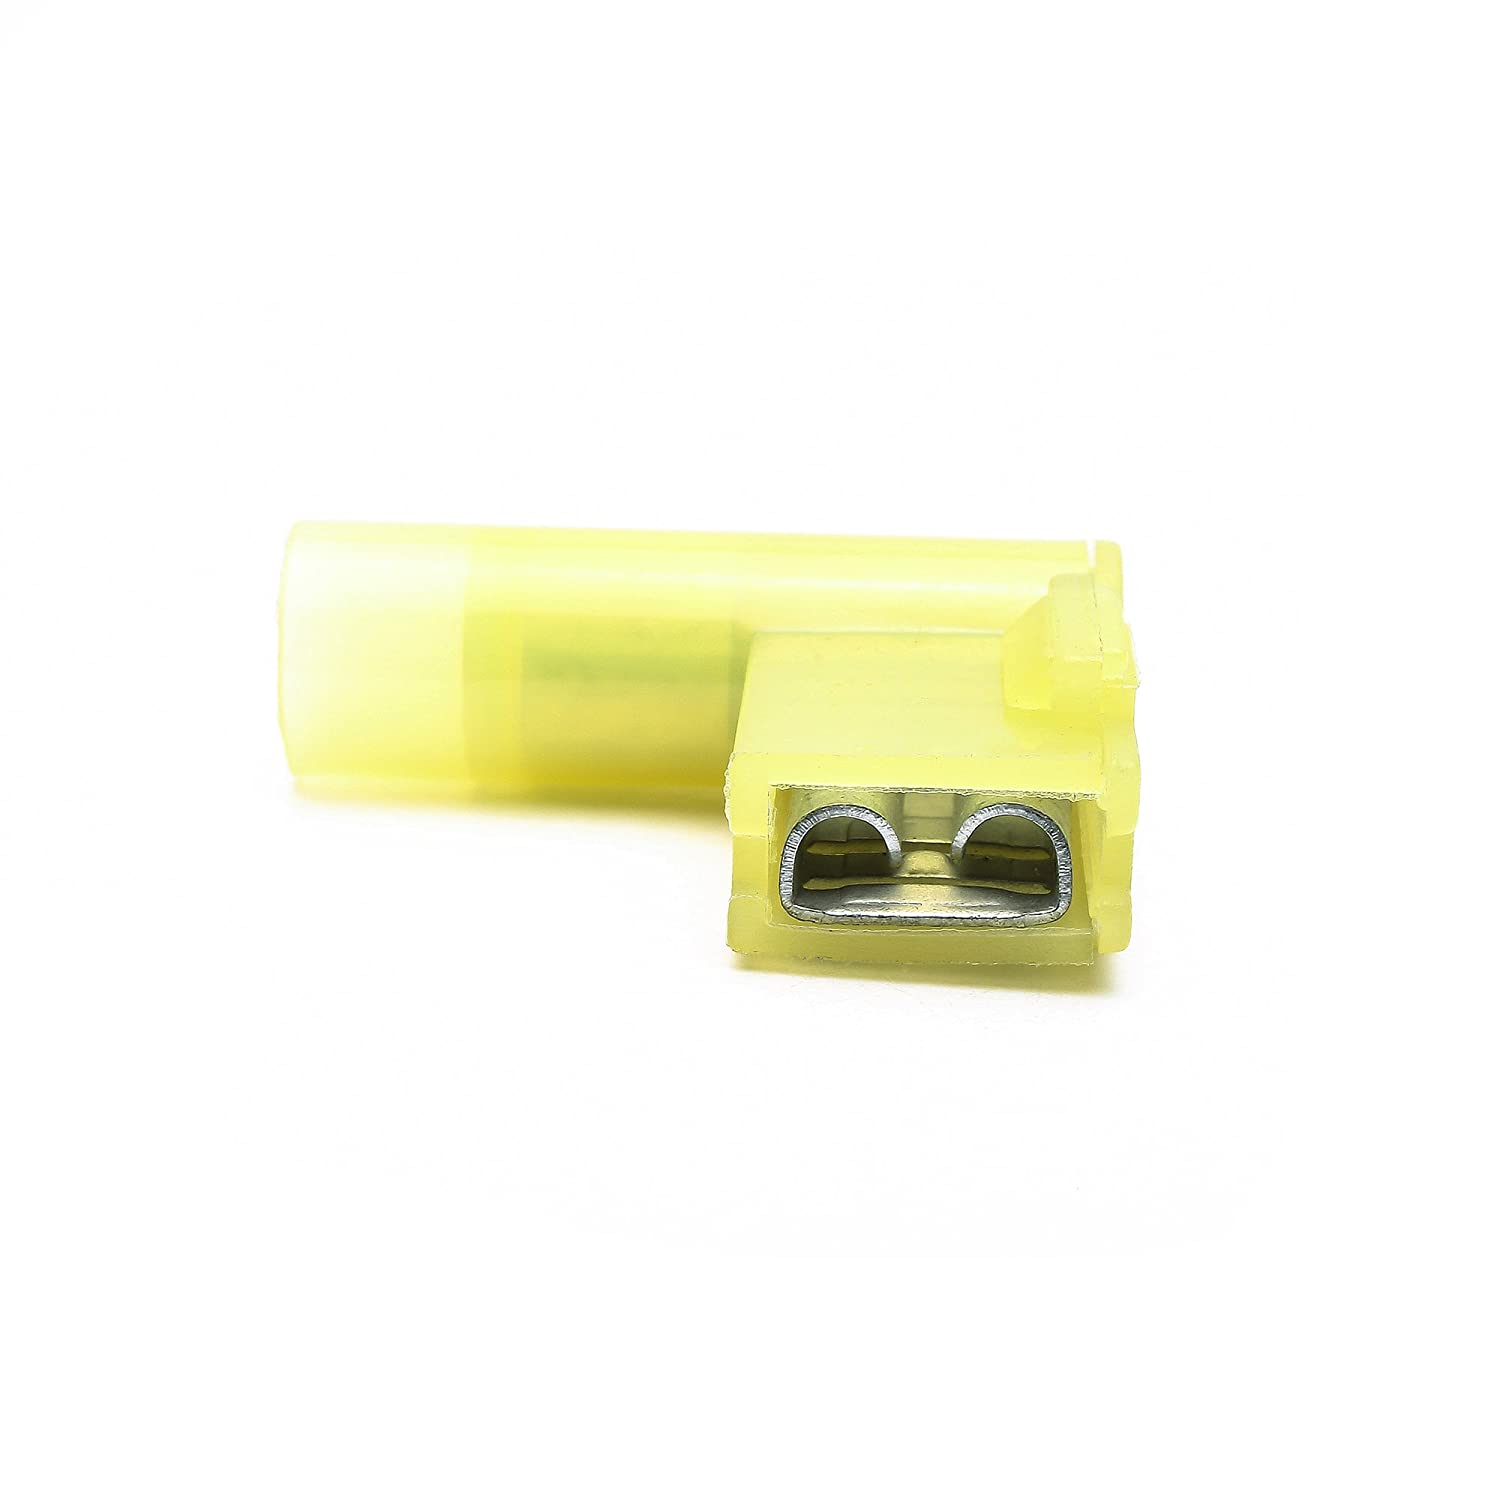 12-10 24A Fully Insulated Flag Wire Connector Quick Disconnects Electrical Wiring Female Spade Nylon Wire Crimp Terminal 50 Suyep A.W.G